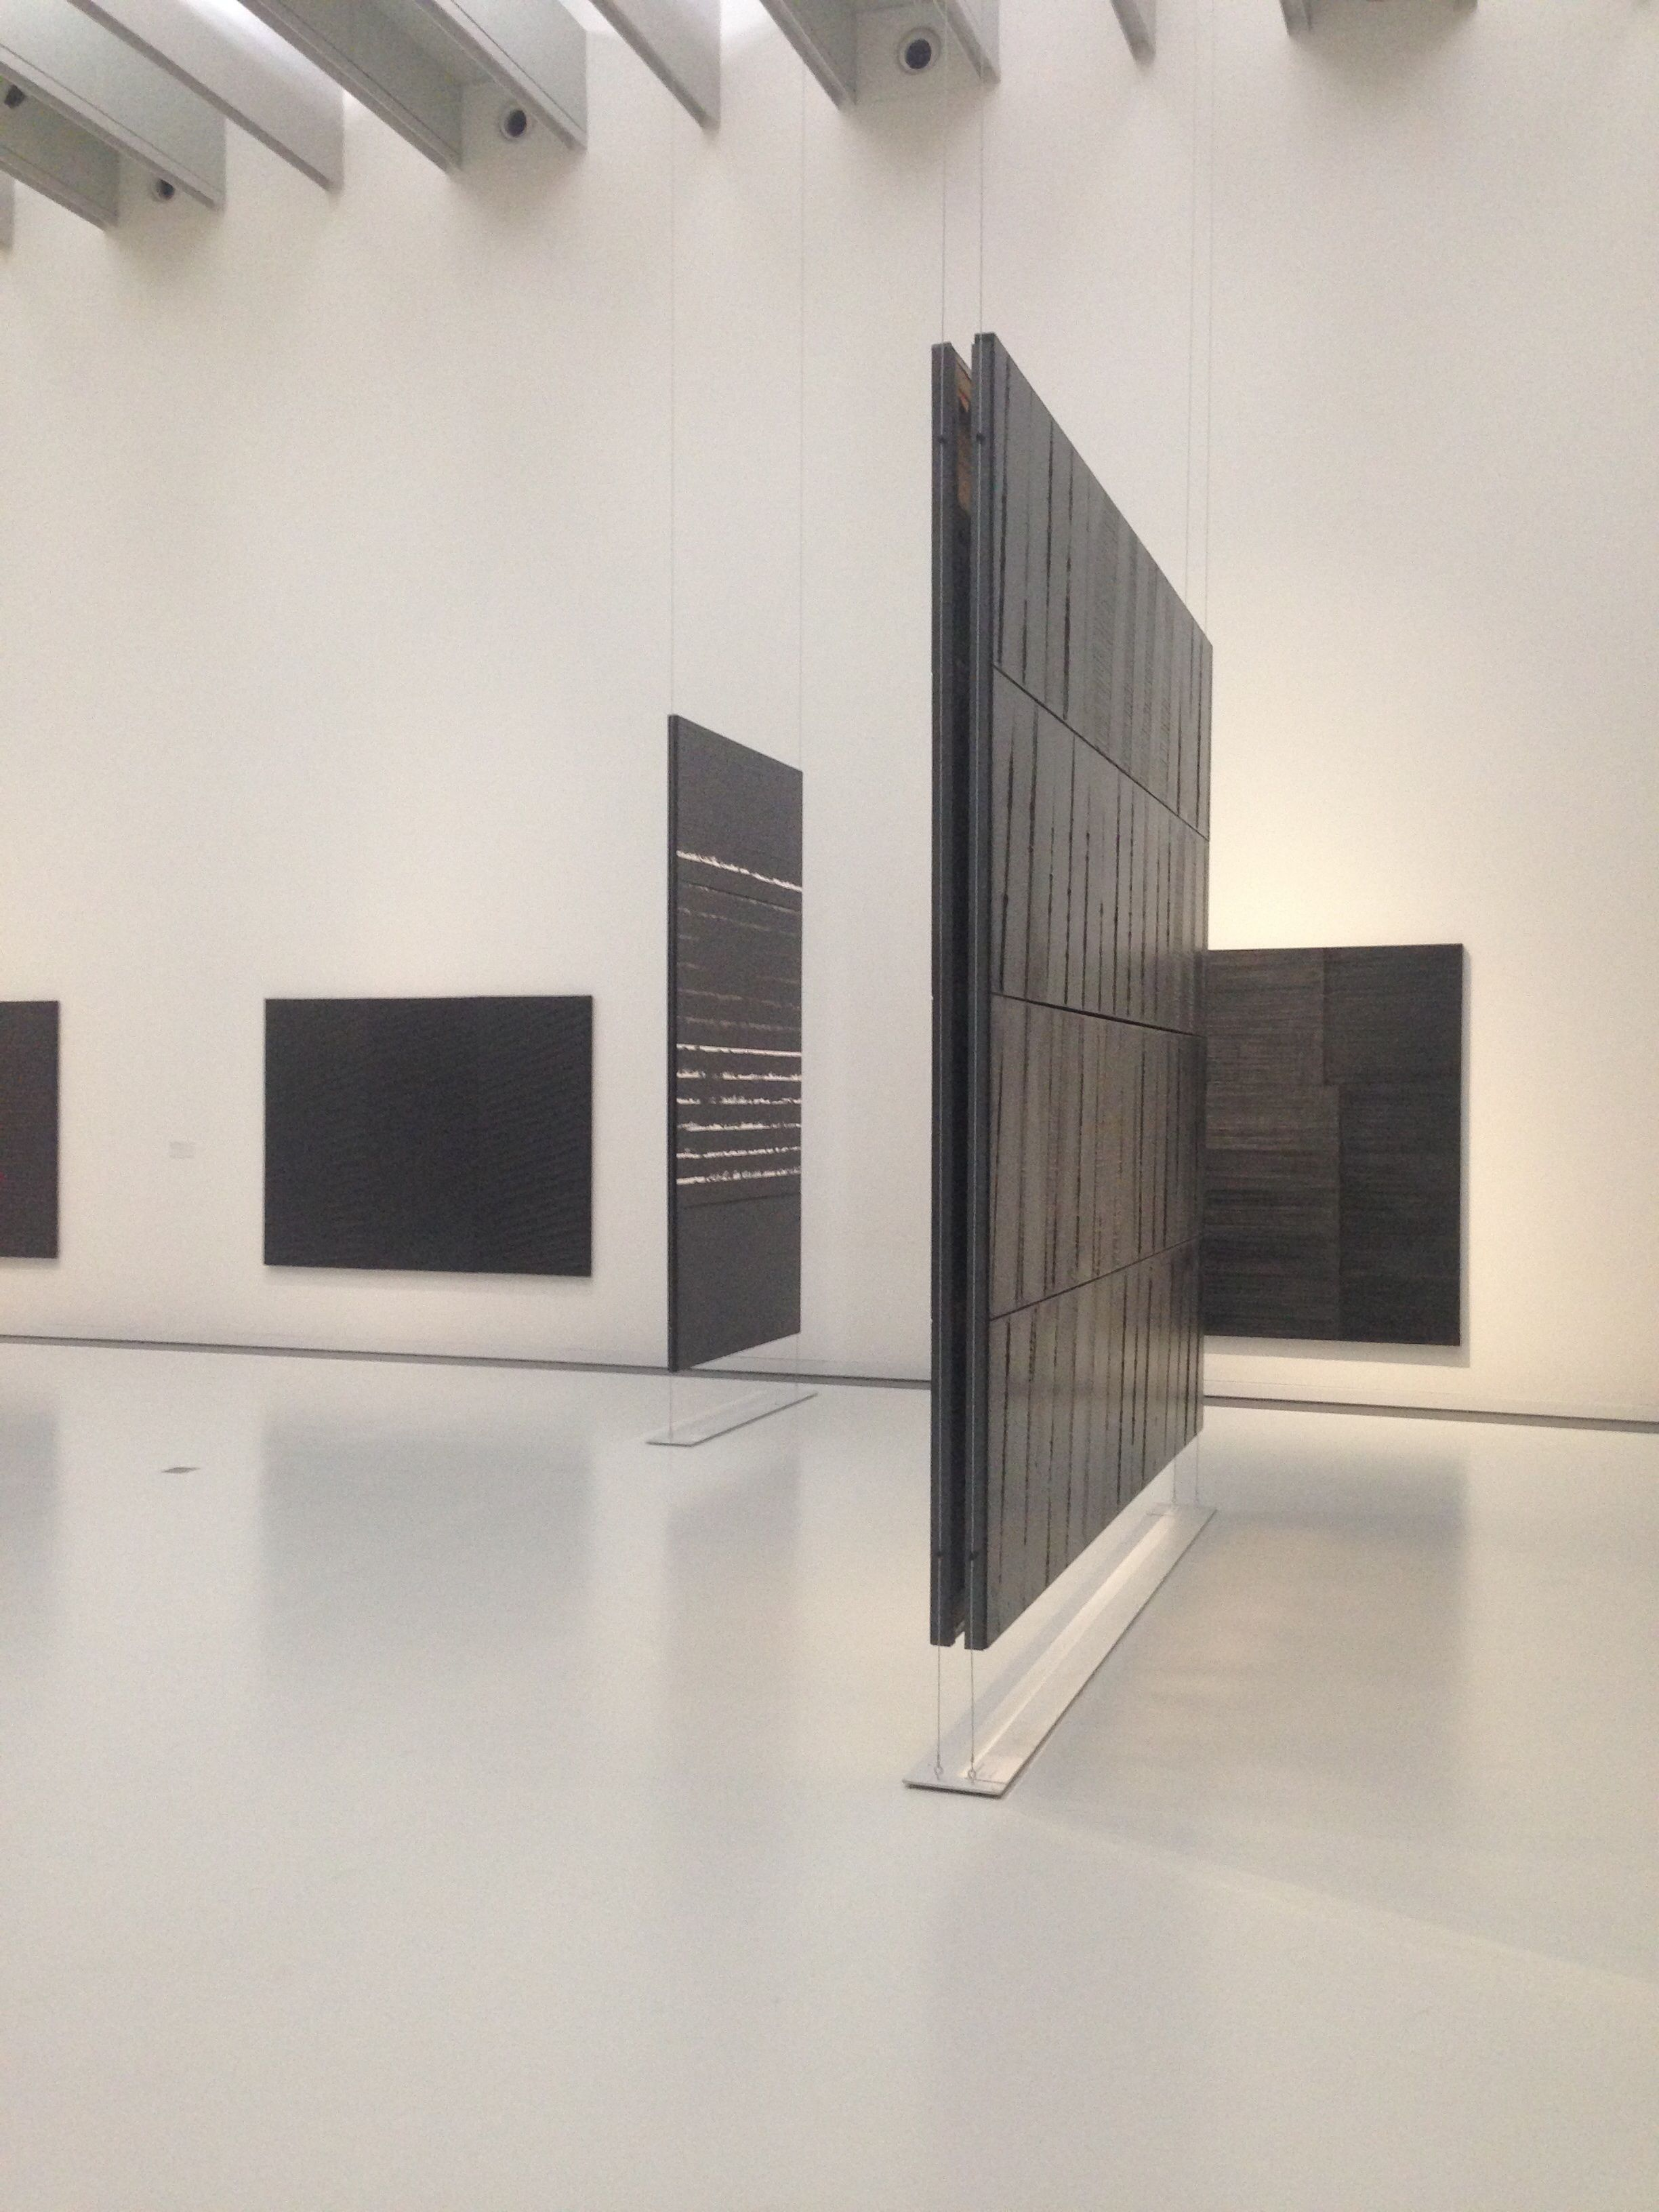 Pierre Soulages Museum In Rodez France Photo Palle B